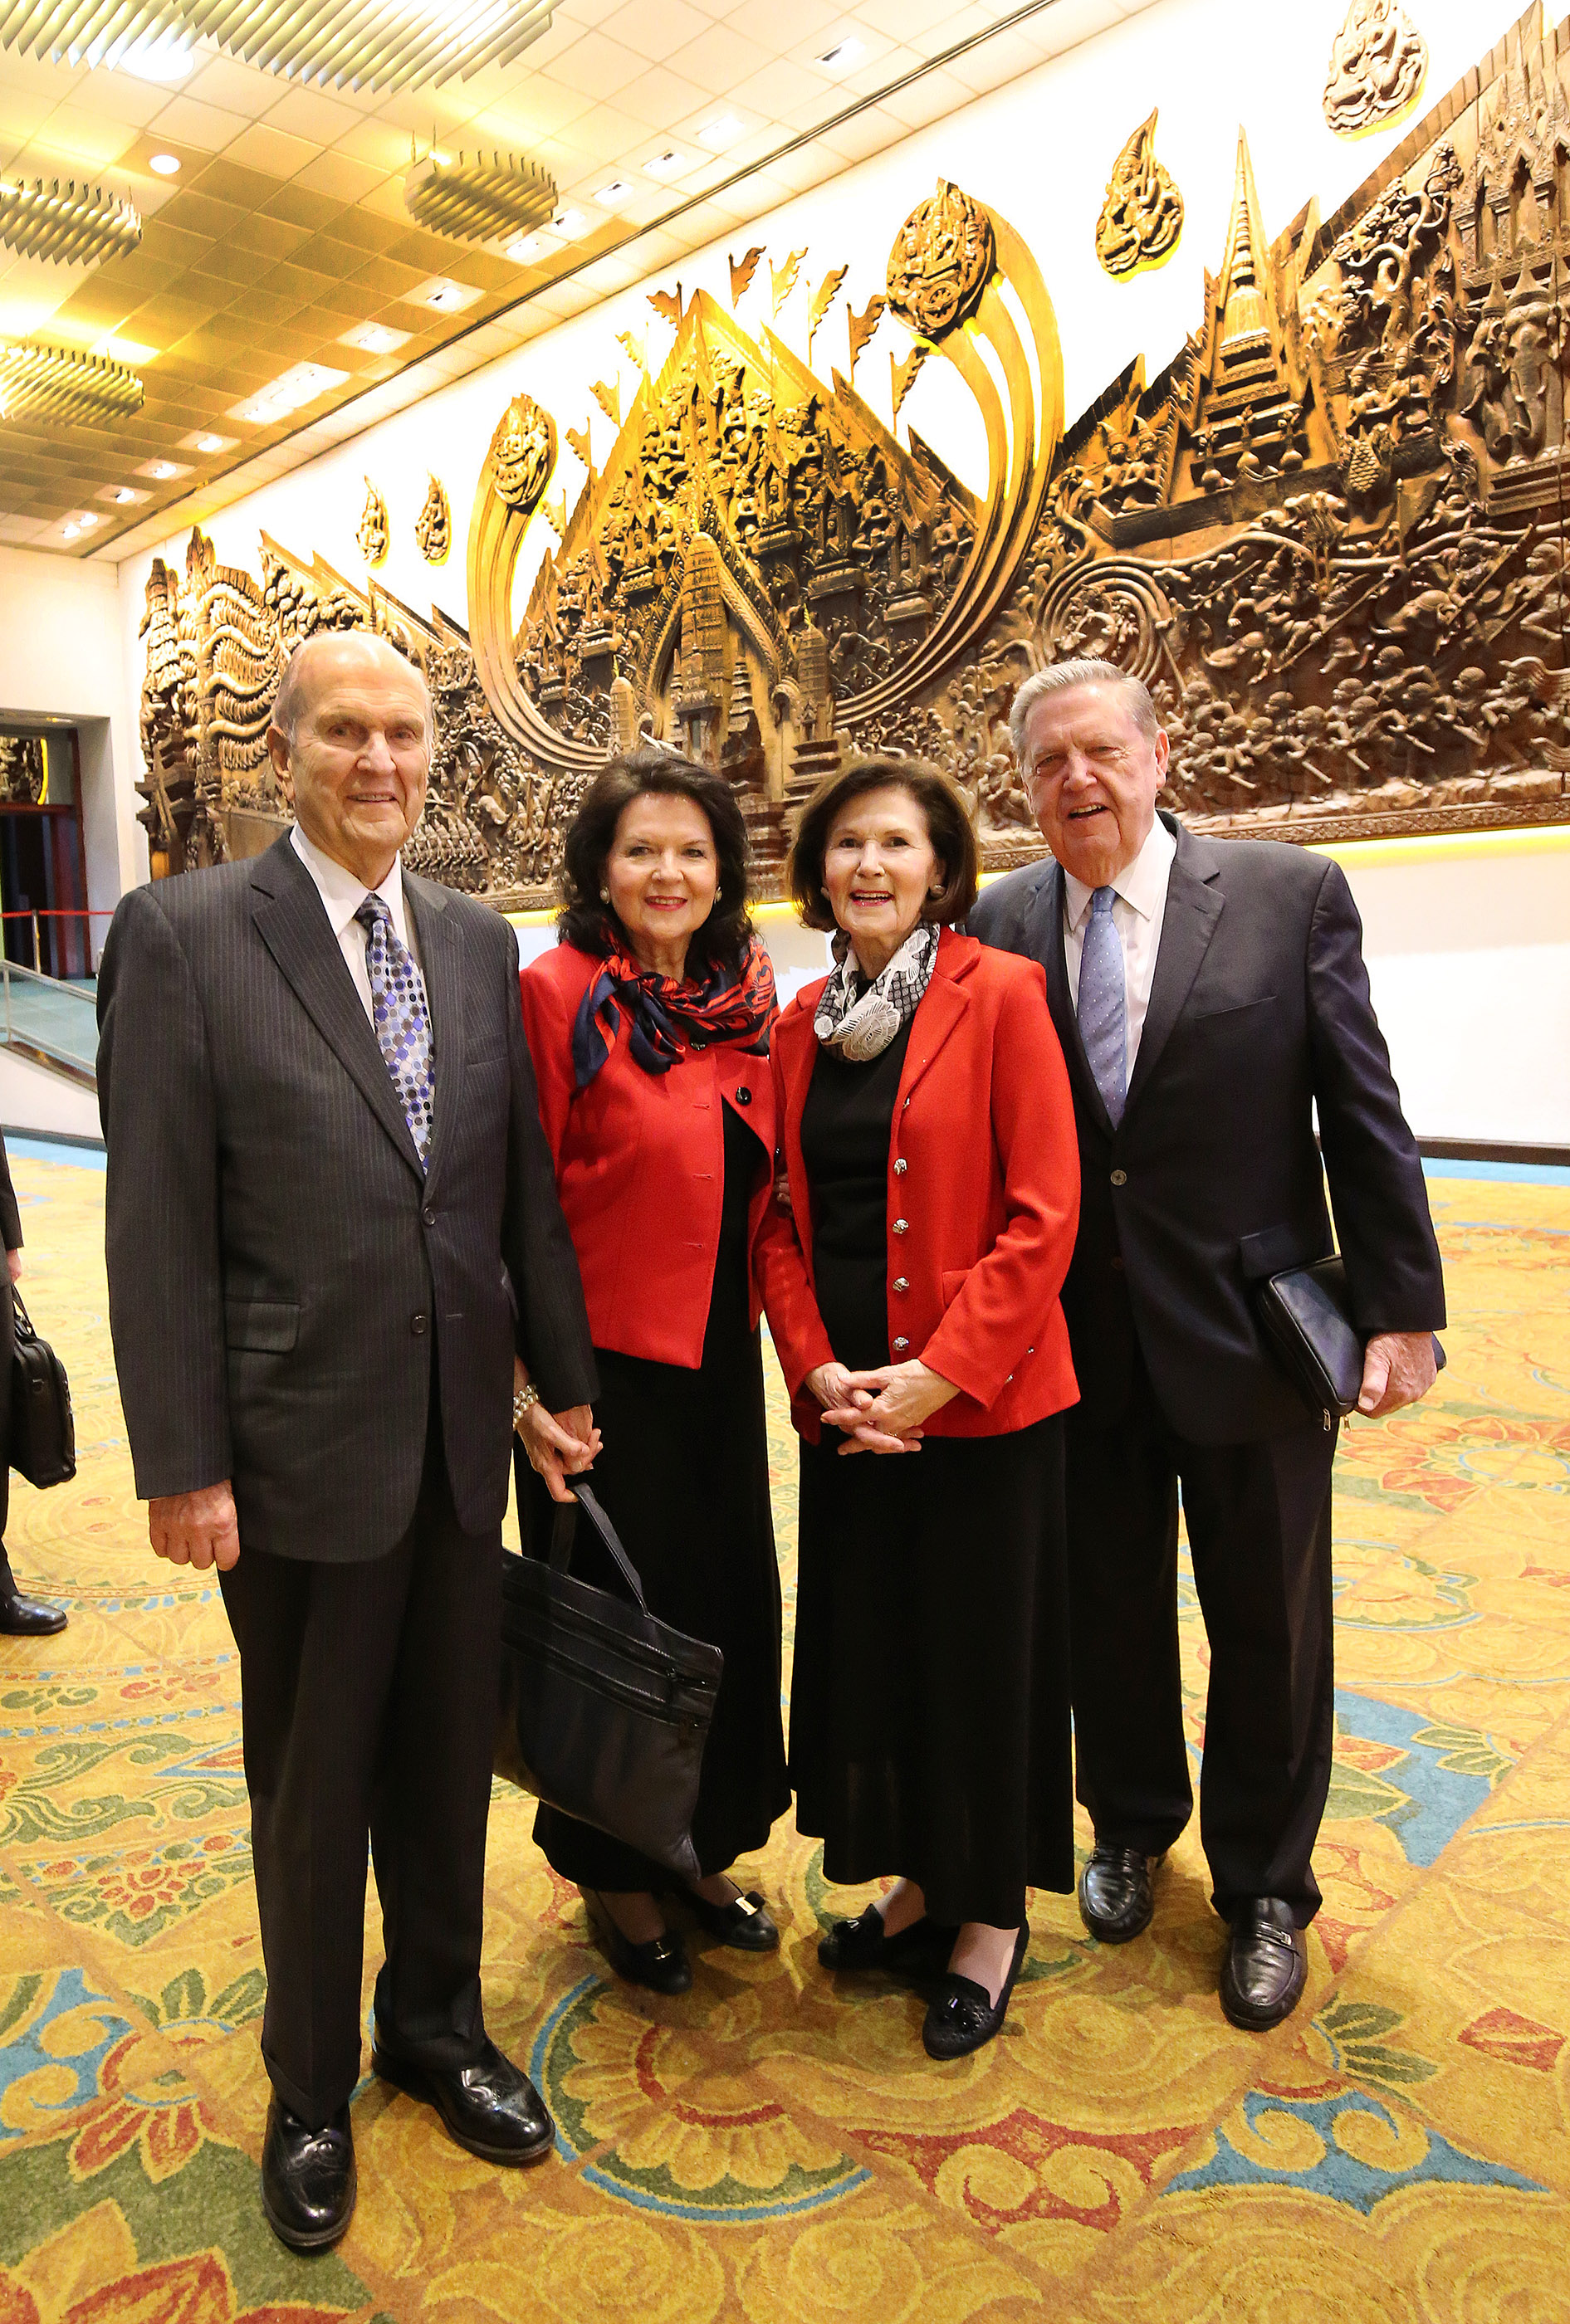 President Russell M. Nelson, his wife, Sister Wendy Nelson, Elder Jeffrey R. Holland of the Quorum of the Twelve Apostles, and Sister Patricia Holland pause before a devotional in Bangkok, Thailand, on Friday, April 20, 2018.